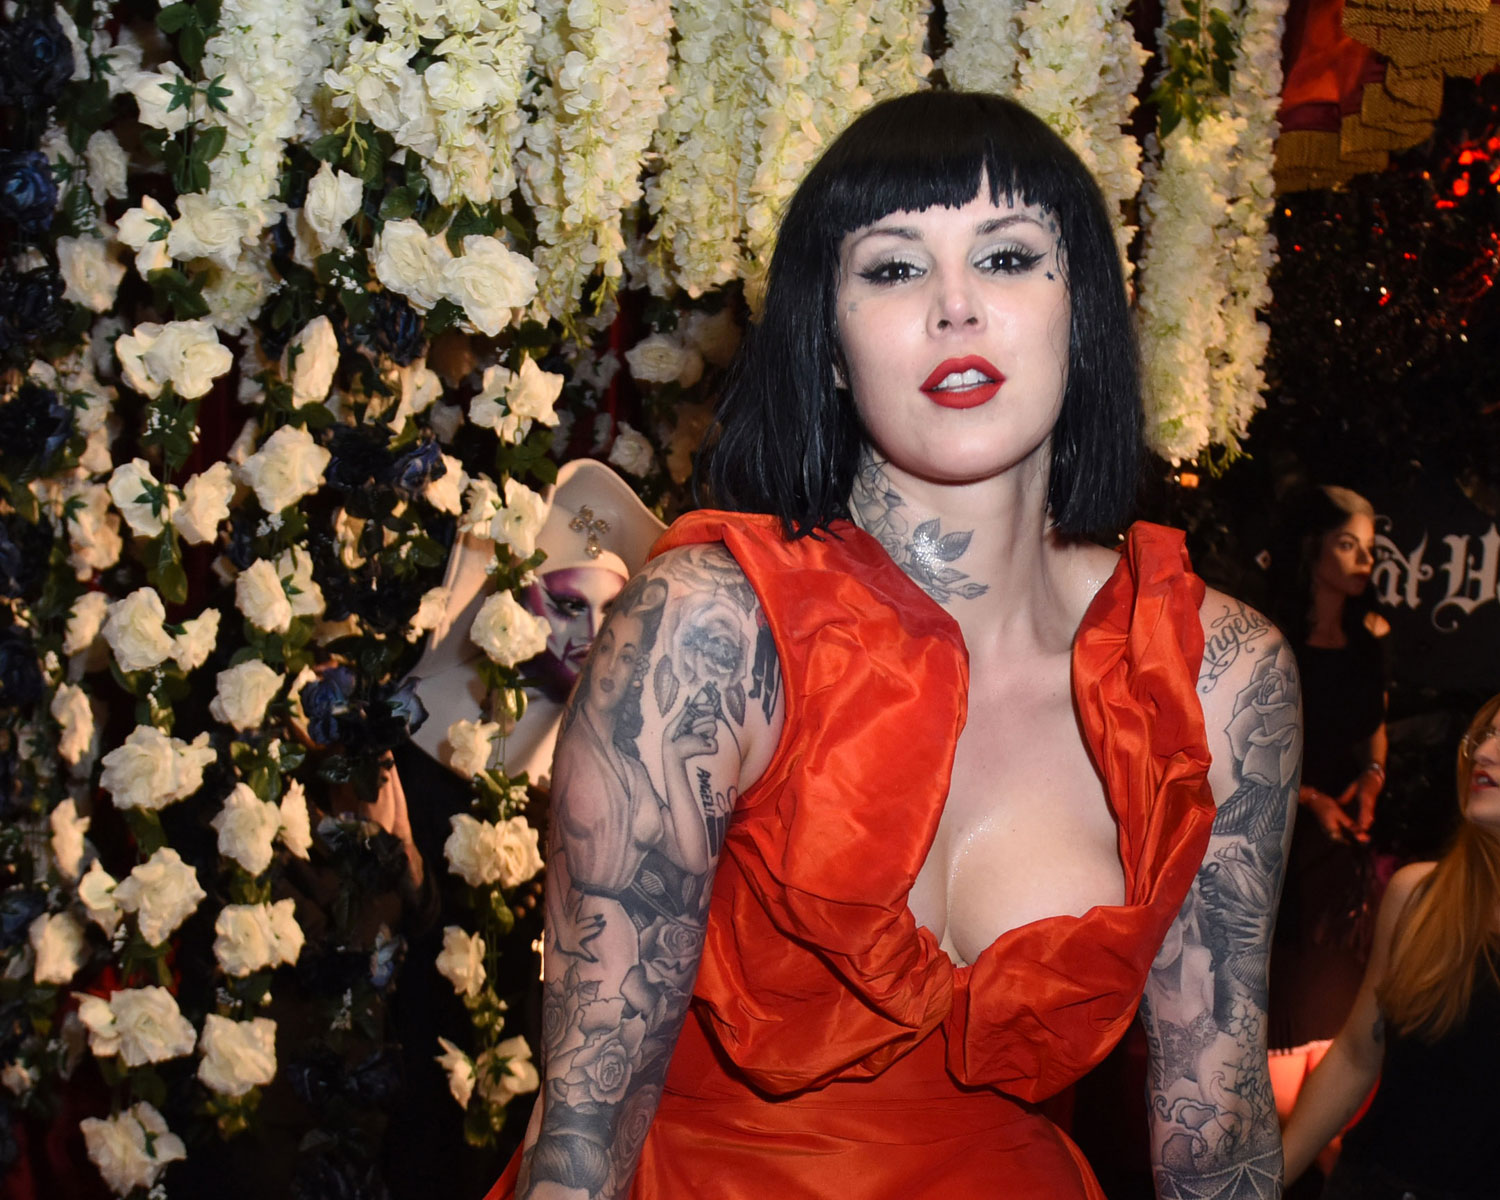 Kat Von D Marries Prayers Singer Leafar Seyer: See Their Wedding Bands